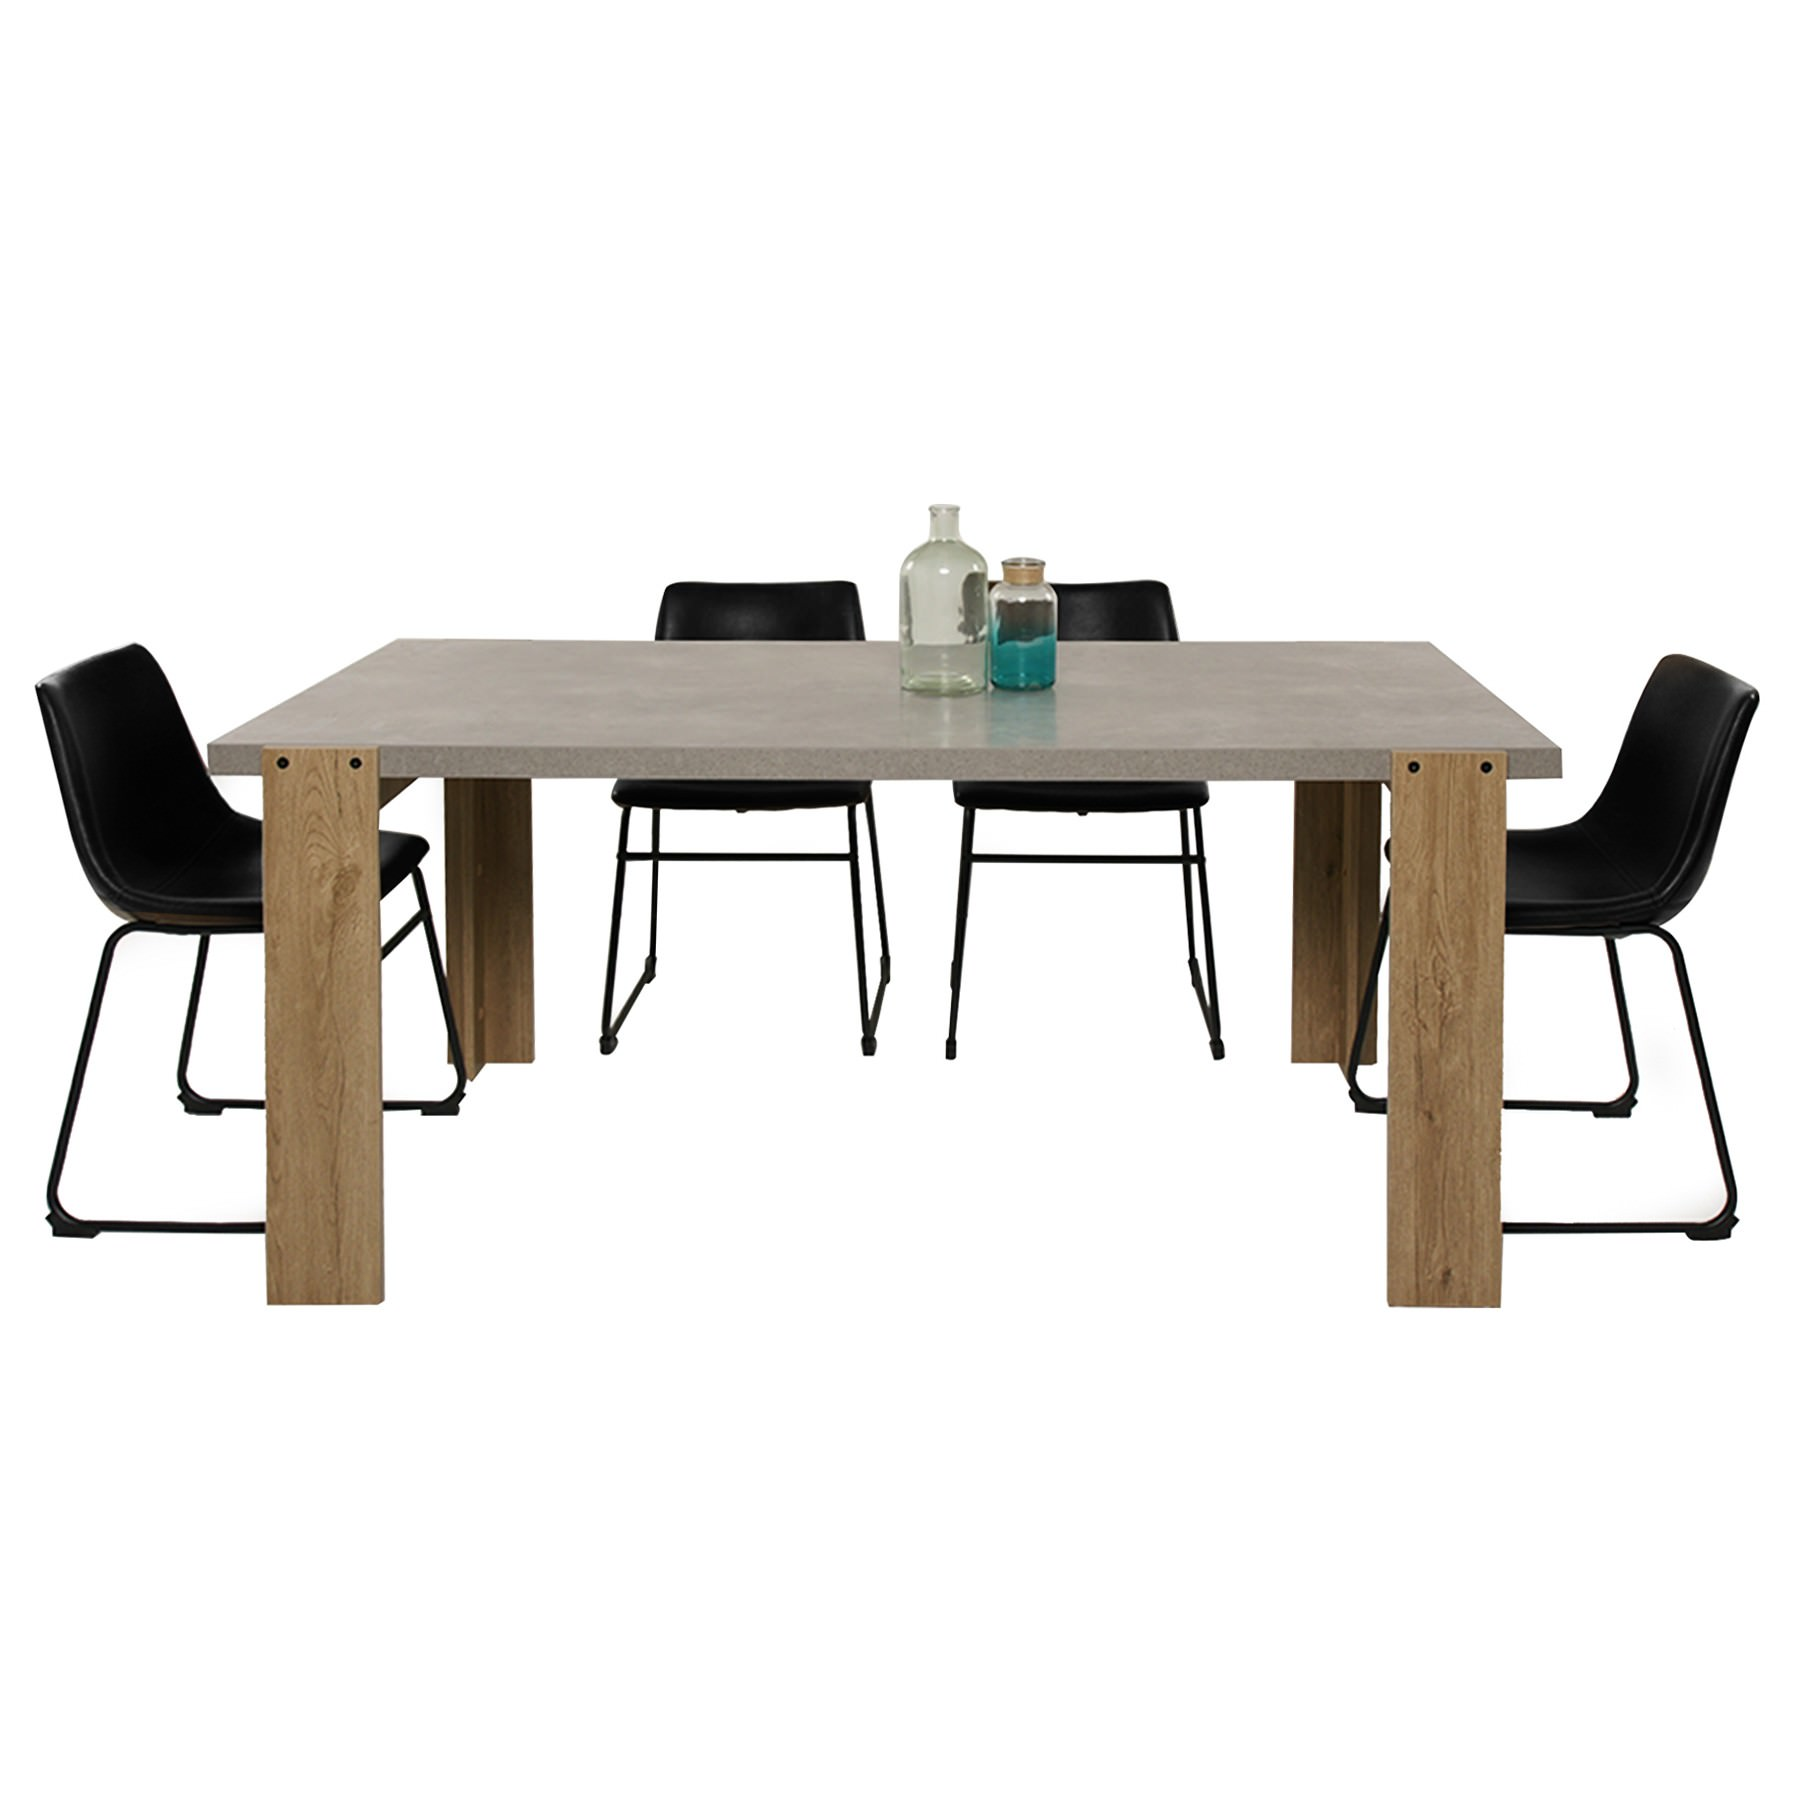 Munich 7 Piece Dining Table Set, 180cm, with Perry Chair